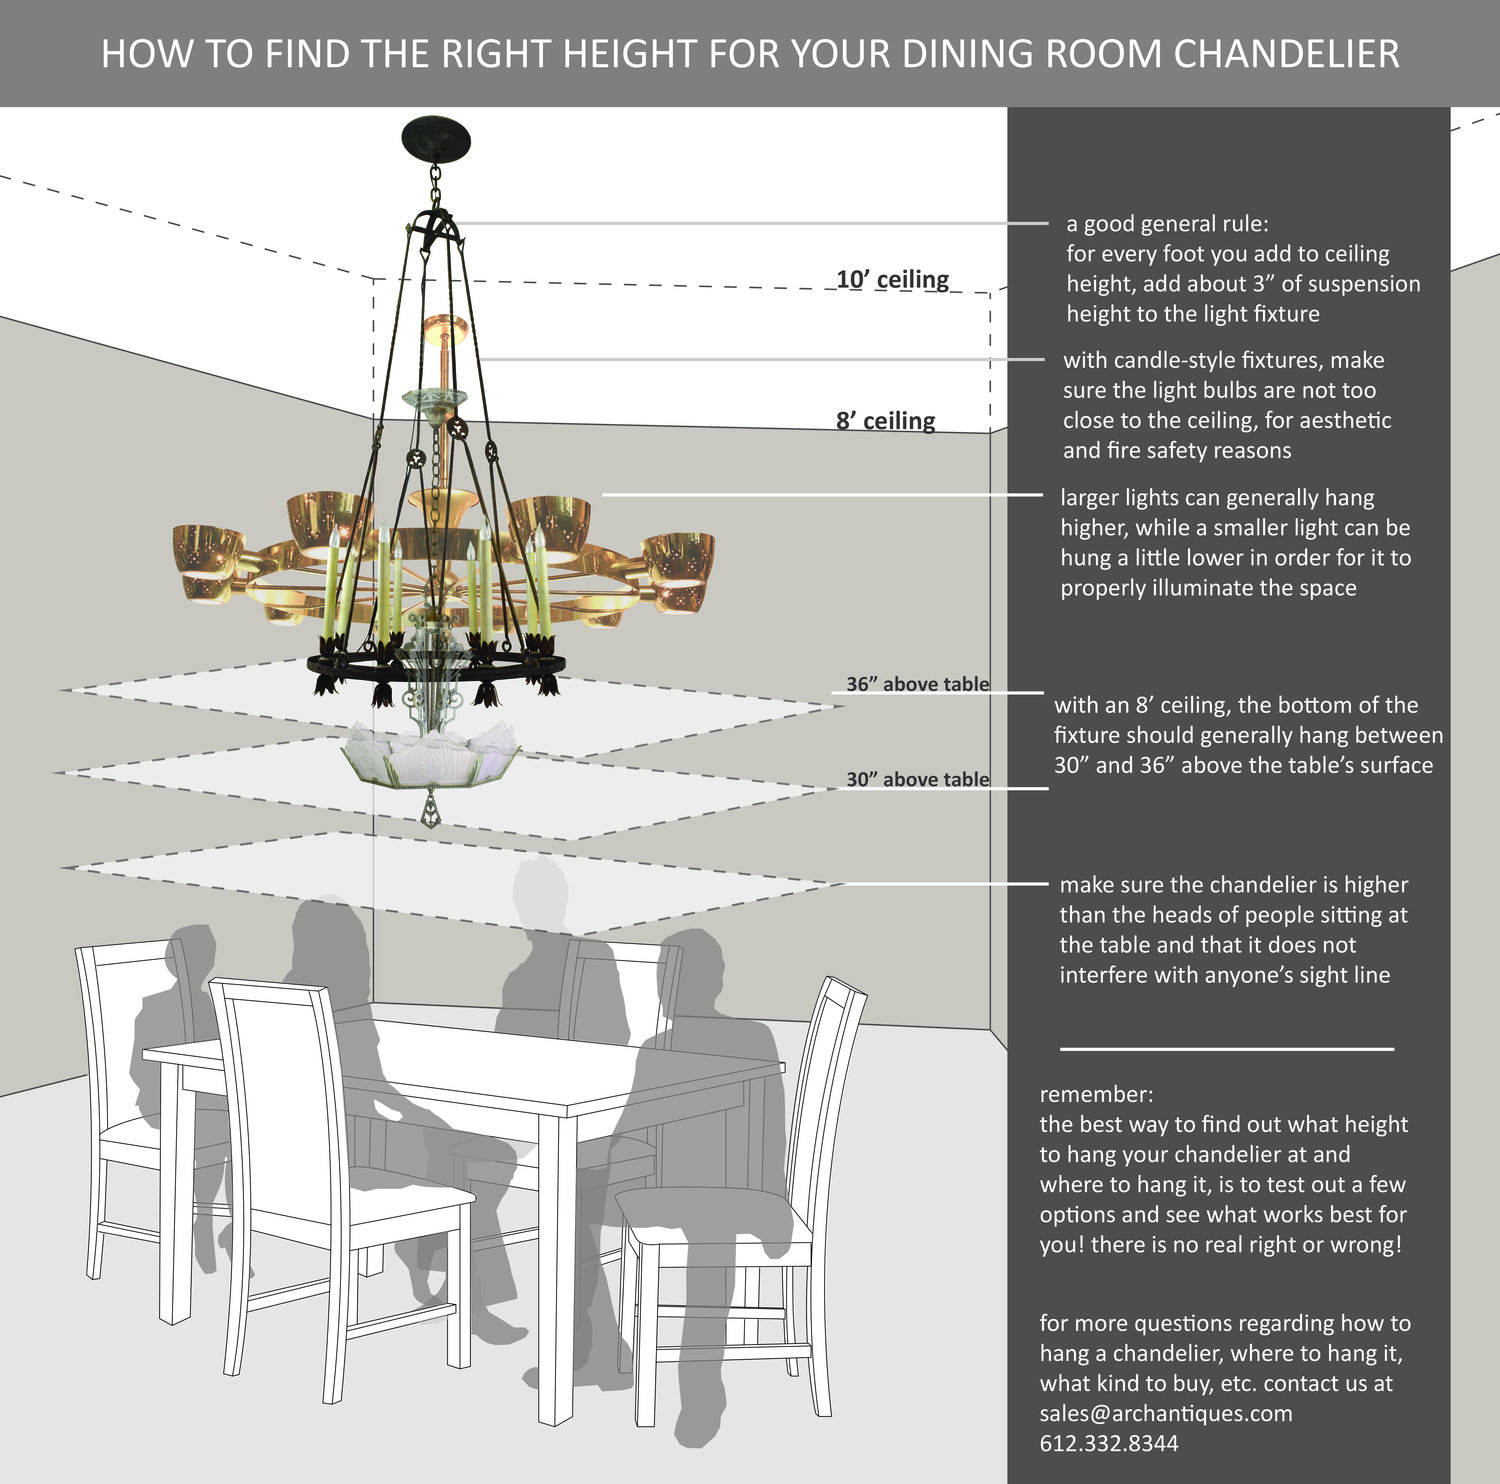 How To Find The Right Hanging Height For Your Chandelier - Dining-room-chandelier-height